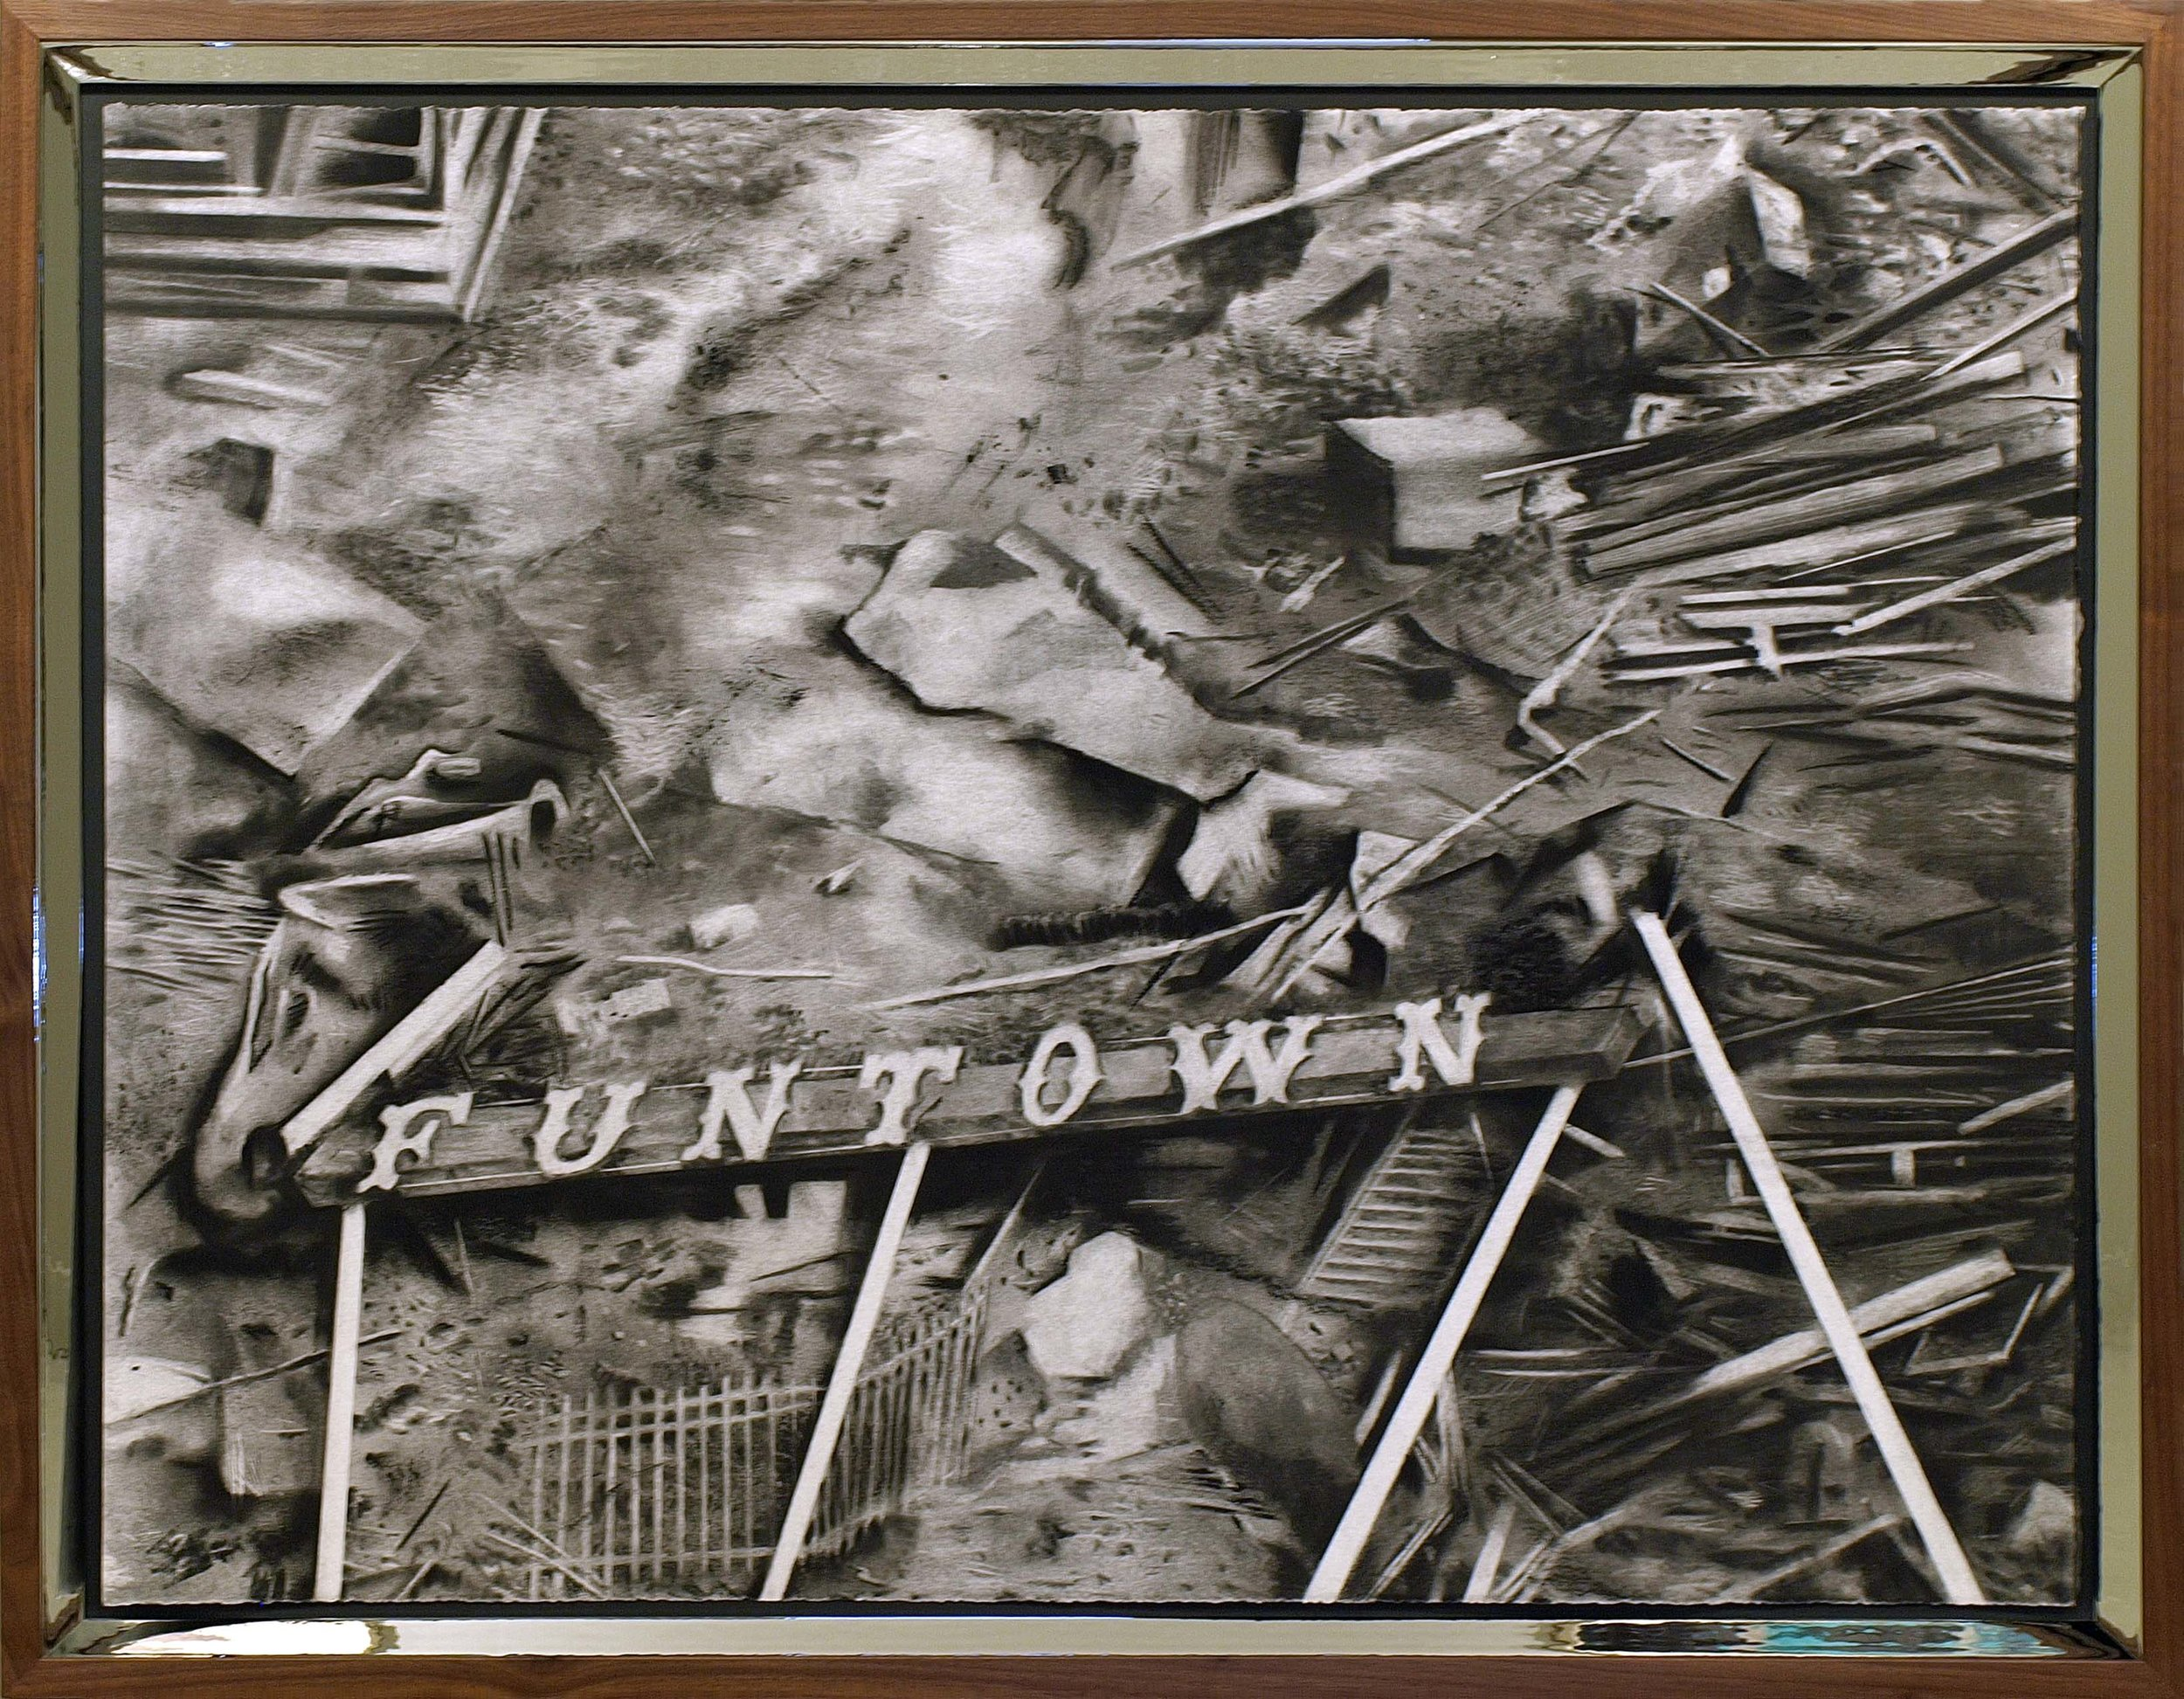 Kyle Beal, Funtown: Electric Park Rubble and Rubble, 2014, Charcoal, pastel on paper, walnut wood frame with mirrored MDF frame, 34 x 44 inches.